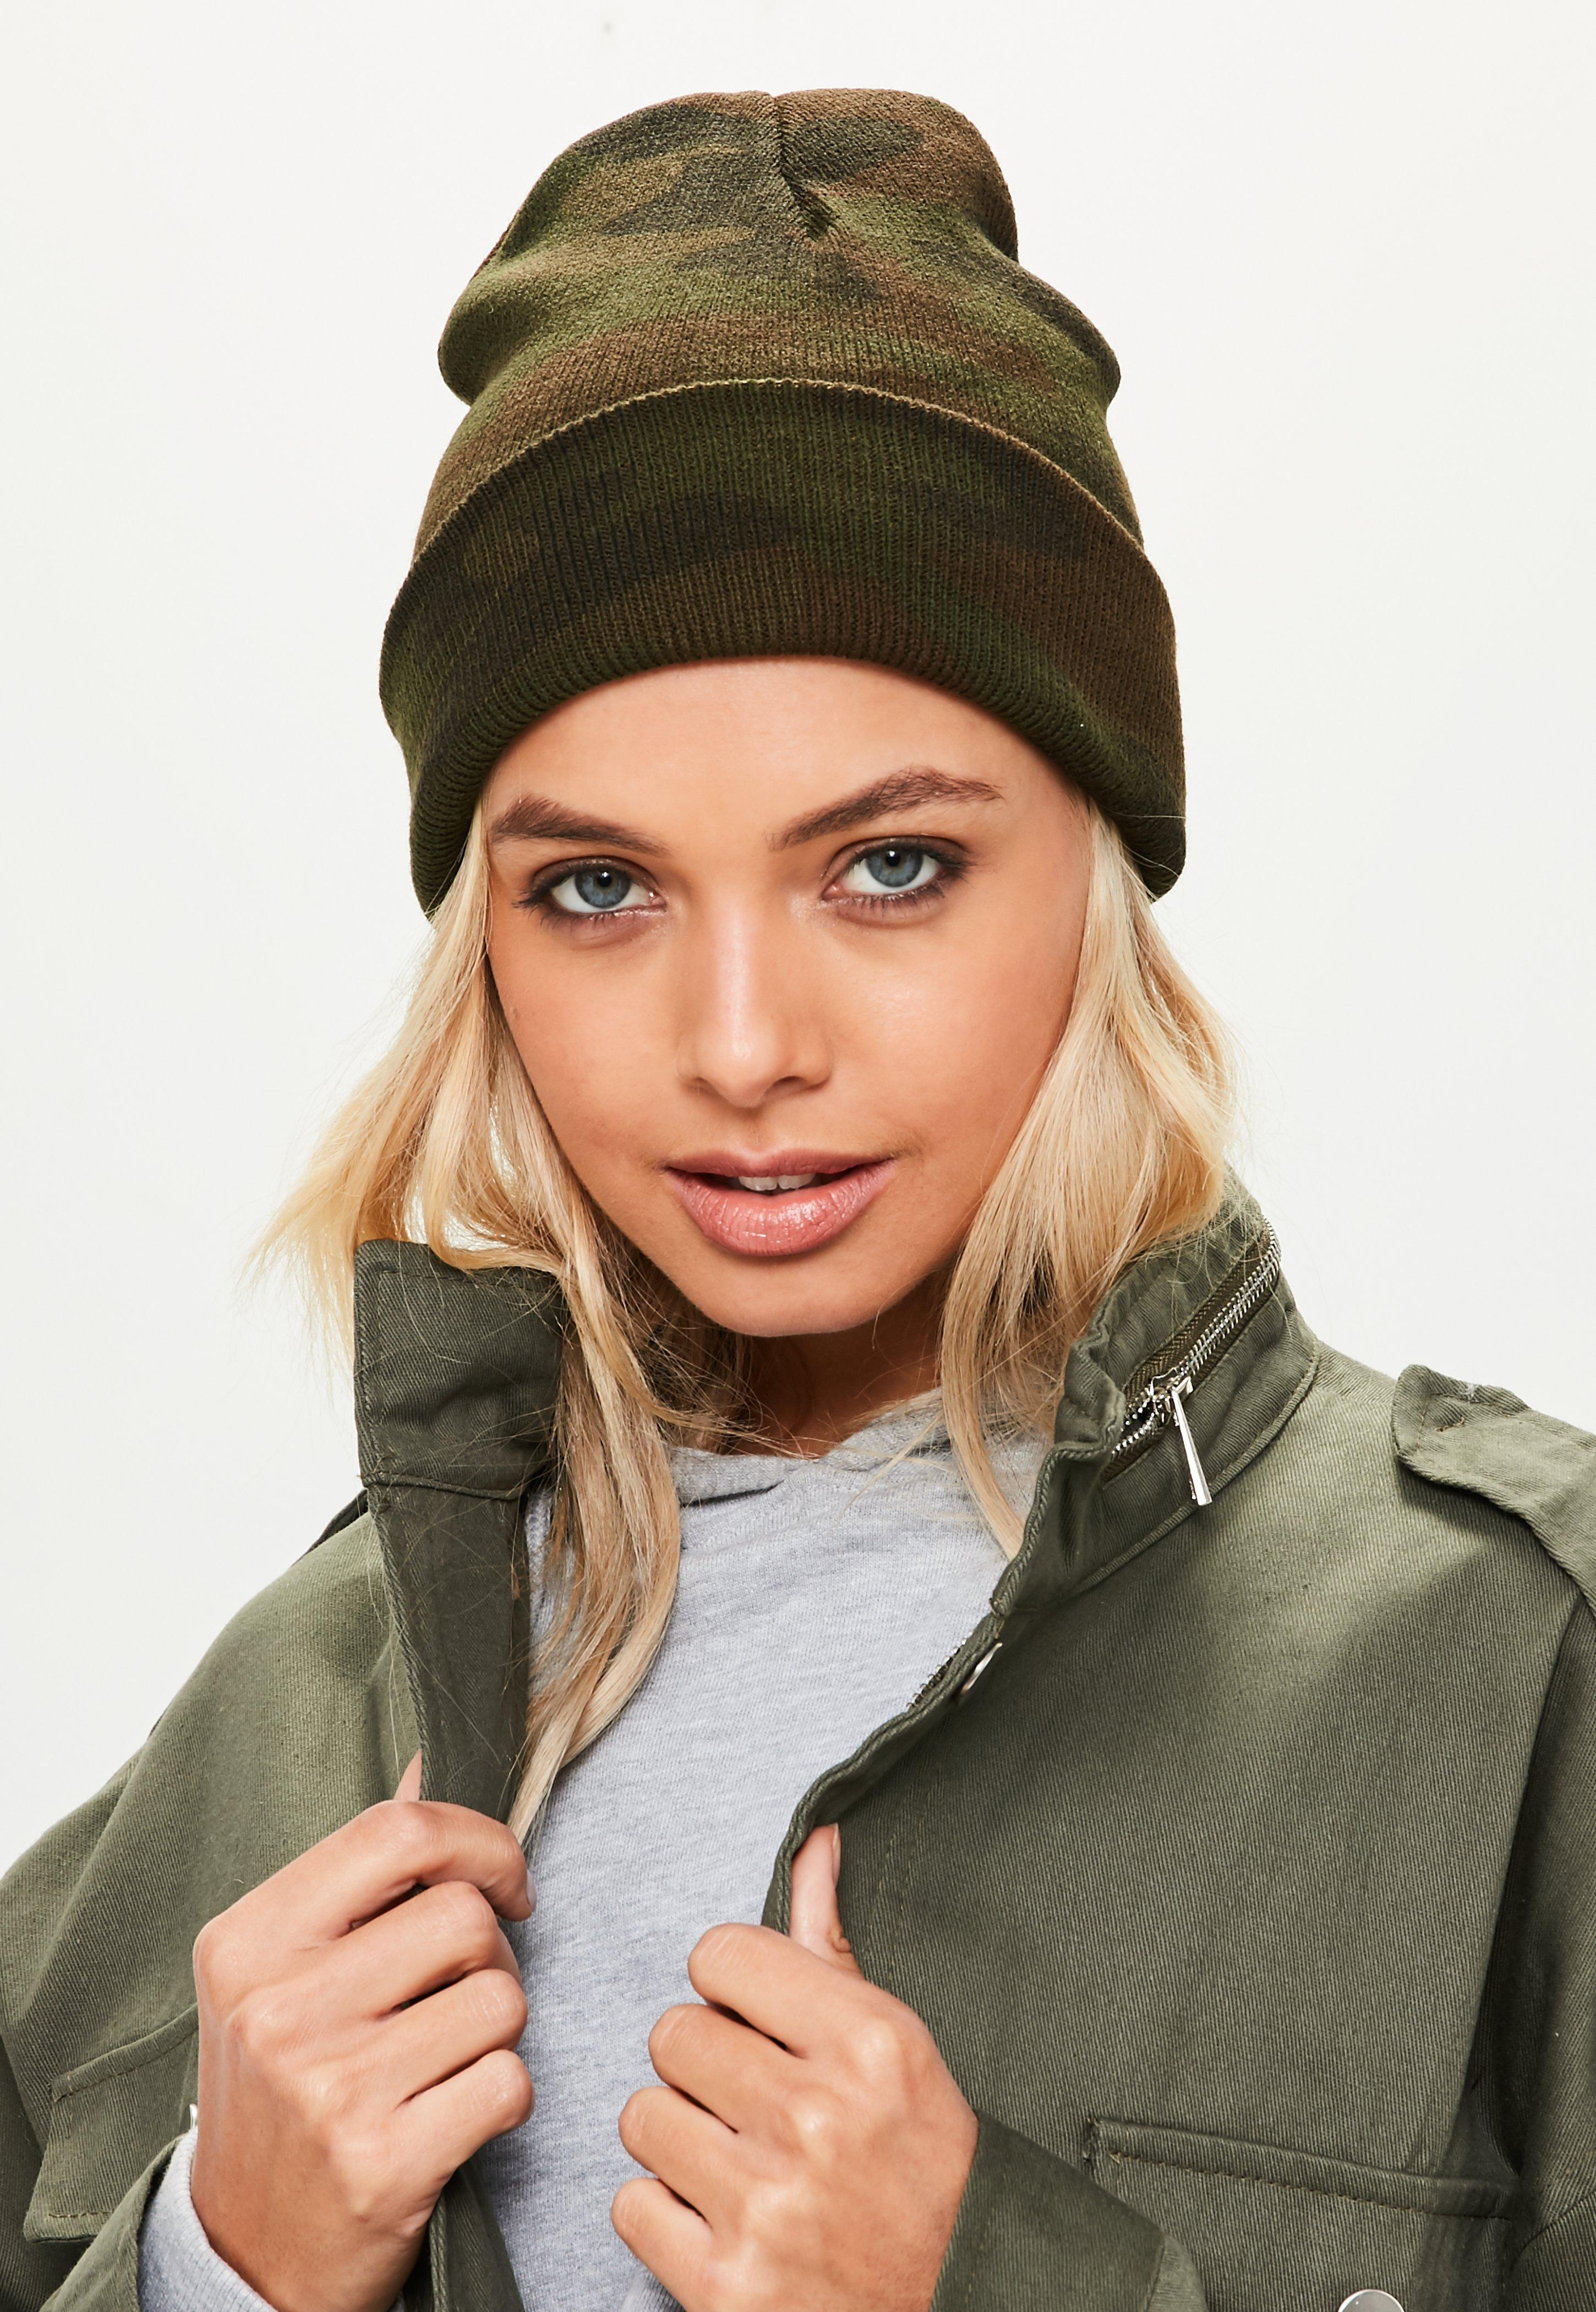 f7a76be70a9e9 Lyst - Missguided Khaki Beanie Hat in Natural